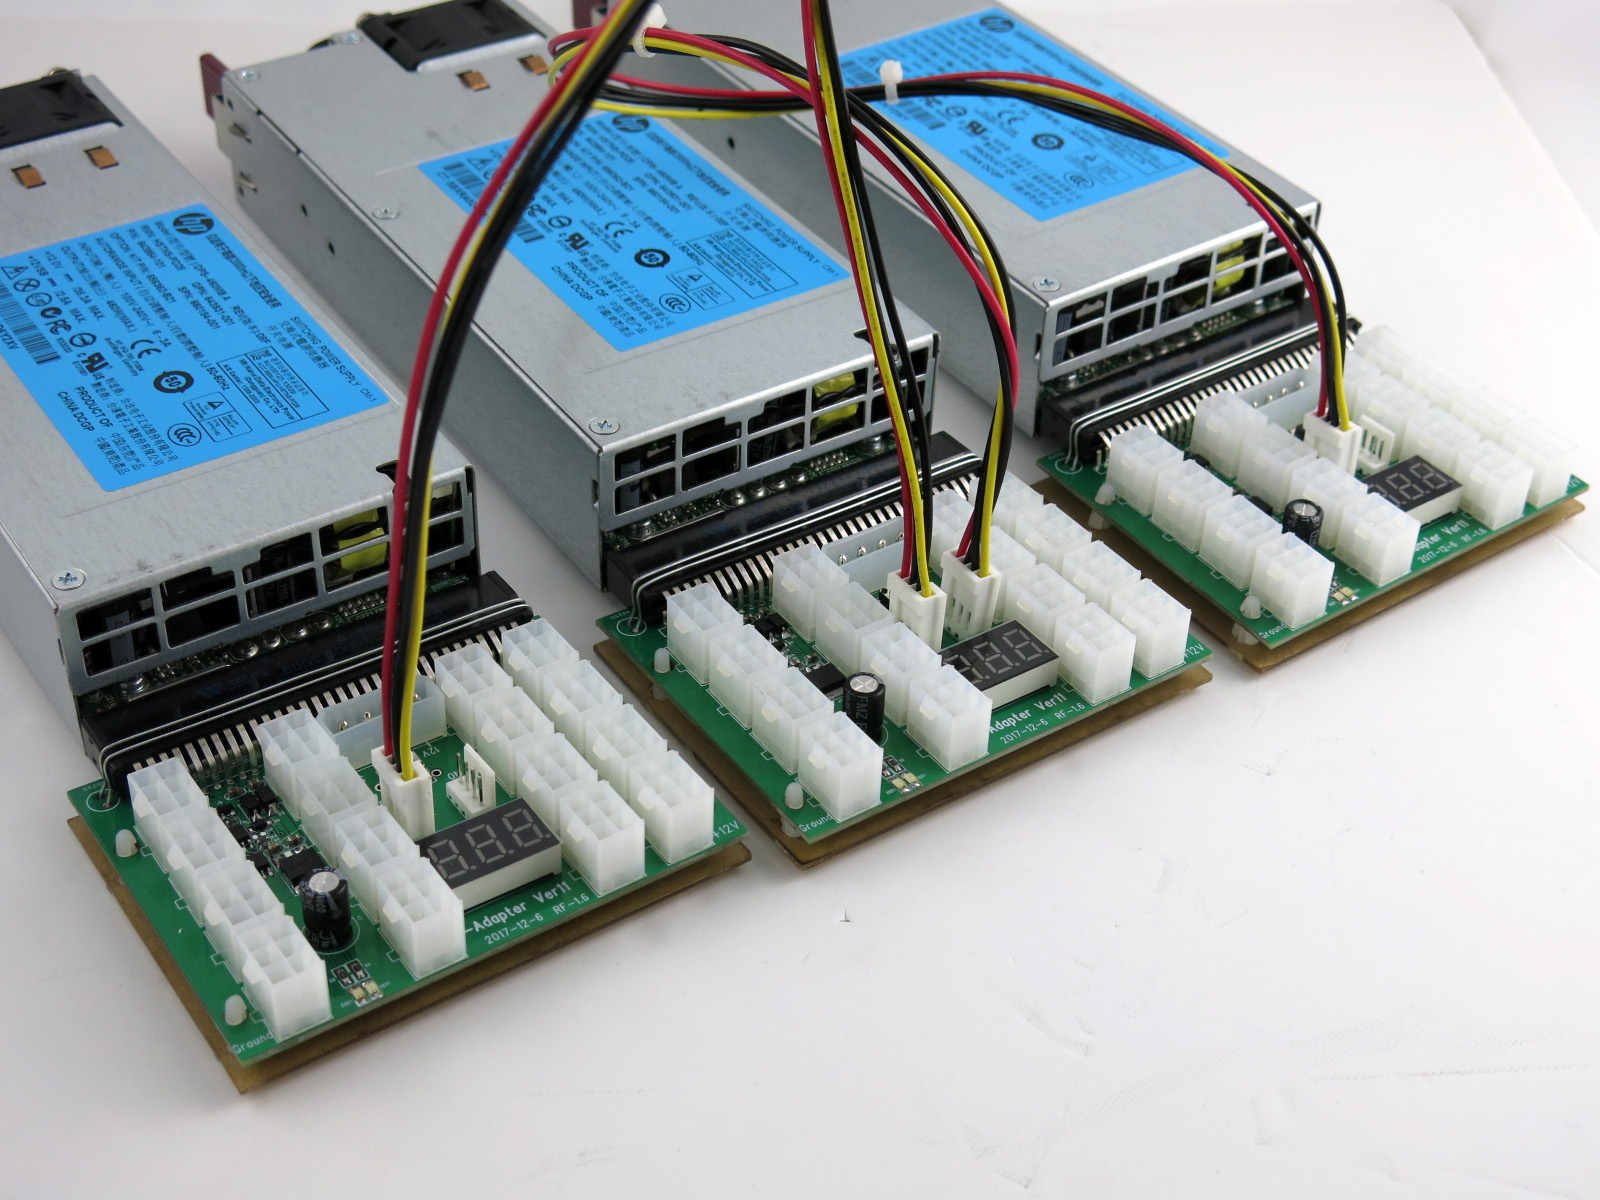 (3) X11 boards connected by interconnect sync cables for mining bitcoin power supply